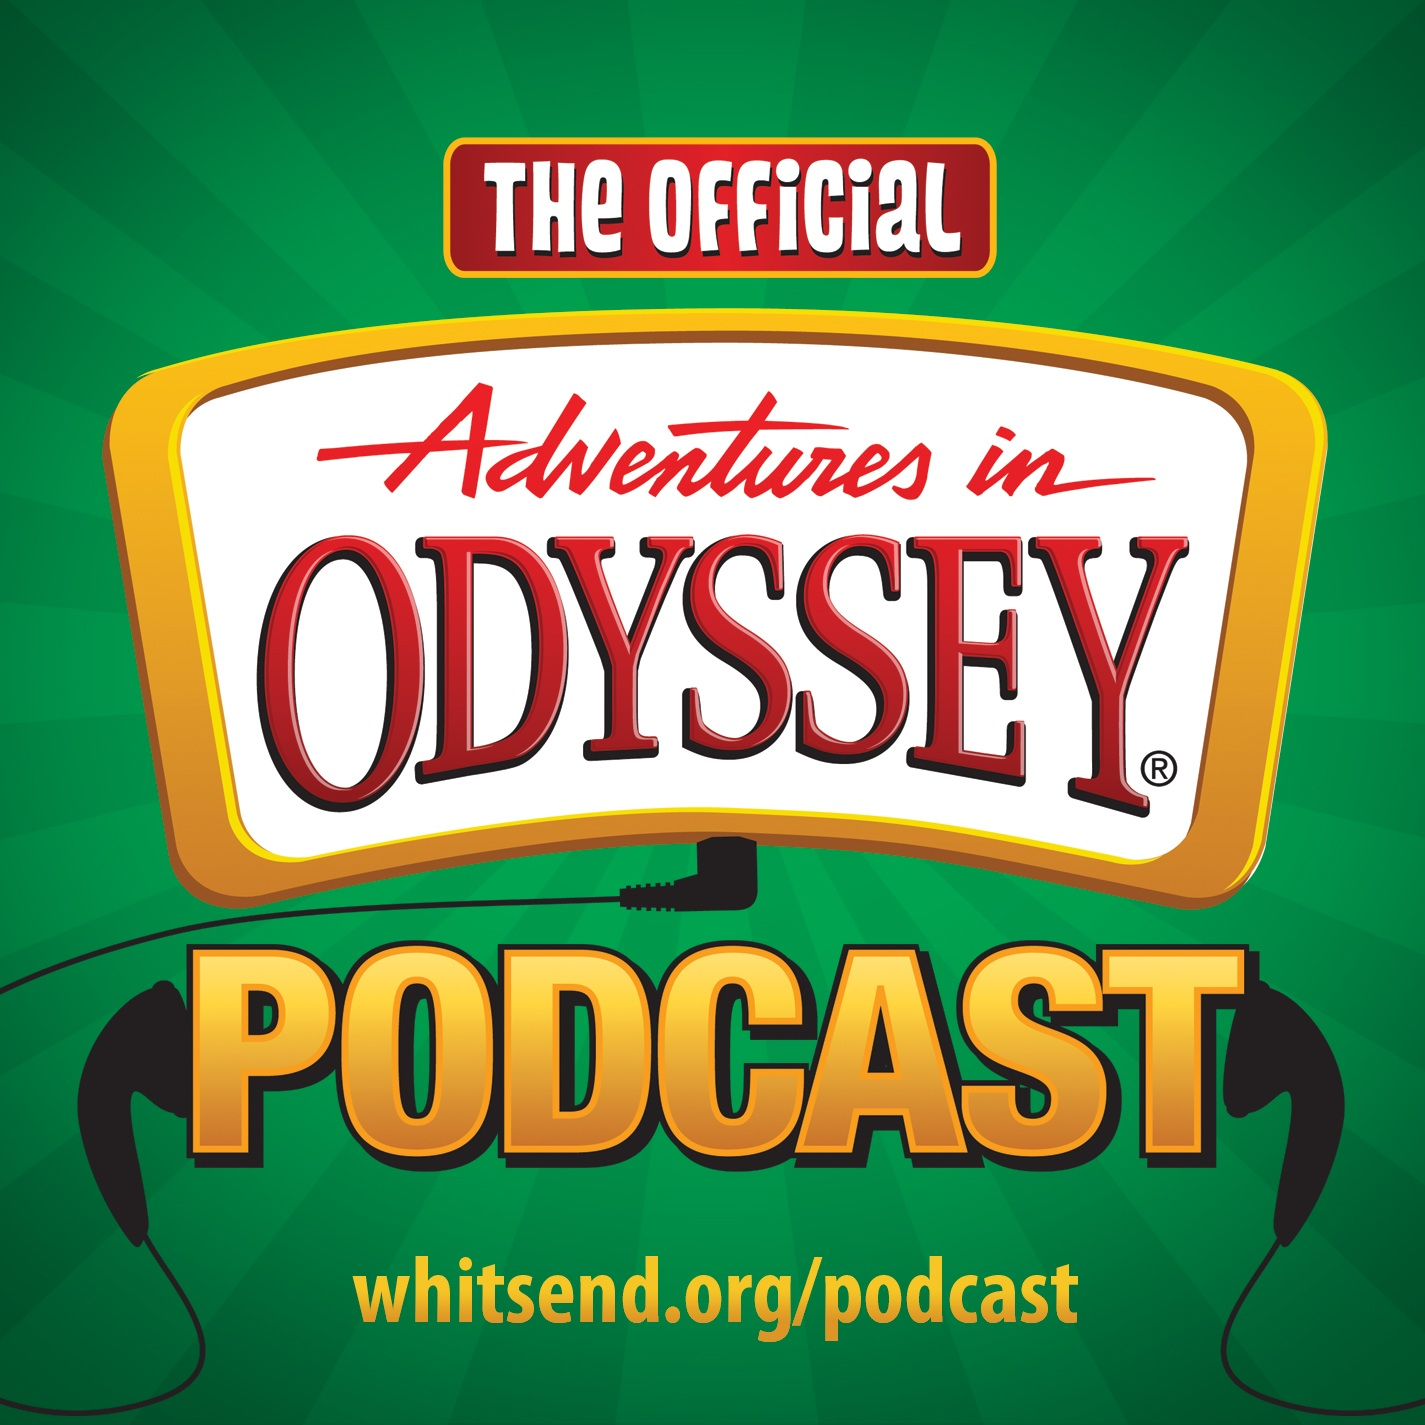 The Official Adventures in Odyssey Podcast by Focus on the Family on Apple  Podcasts